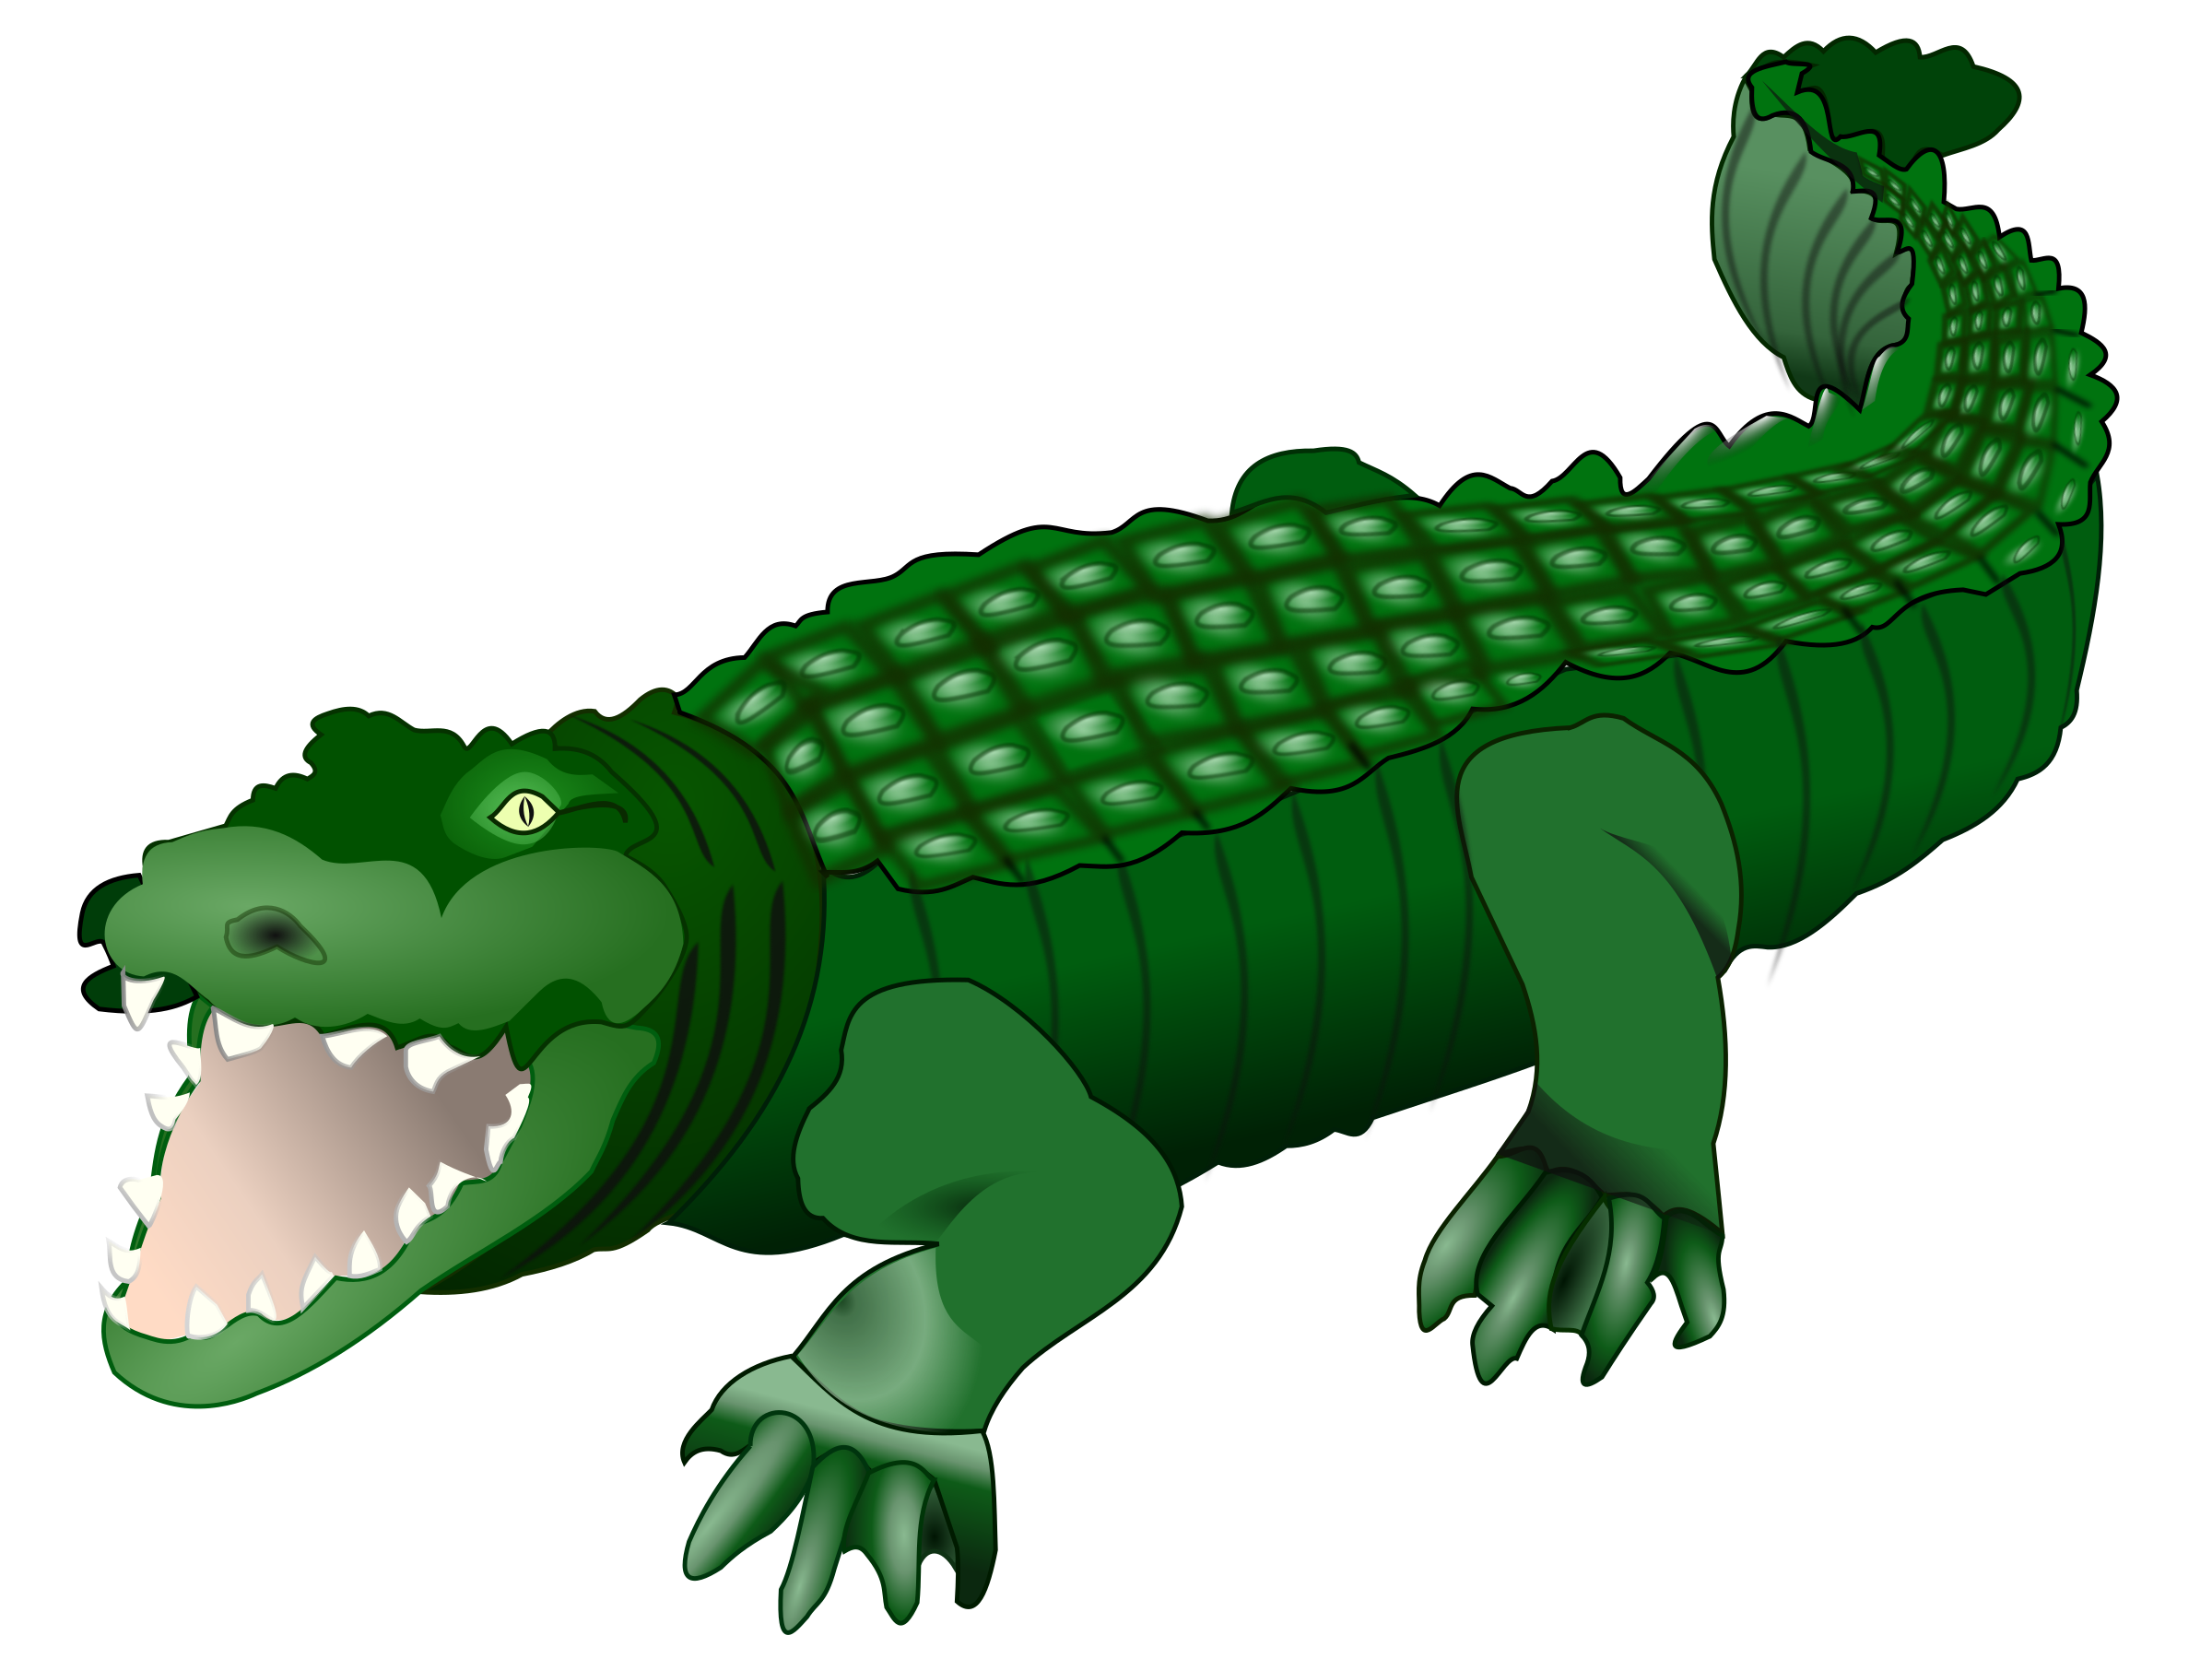 Crocodile by frankes